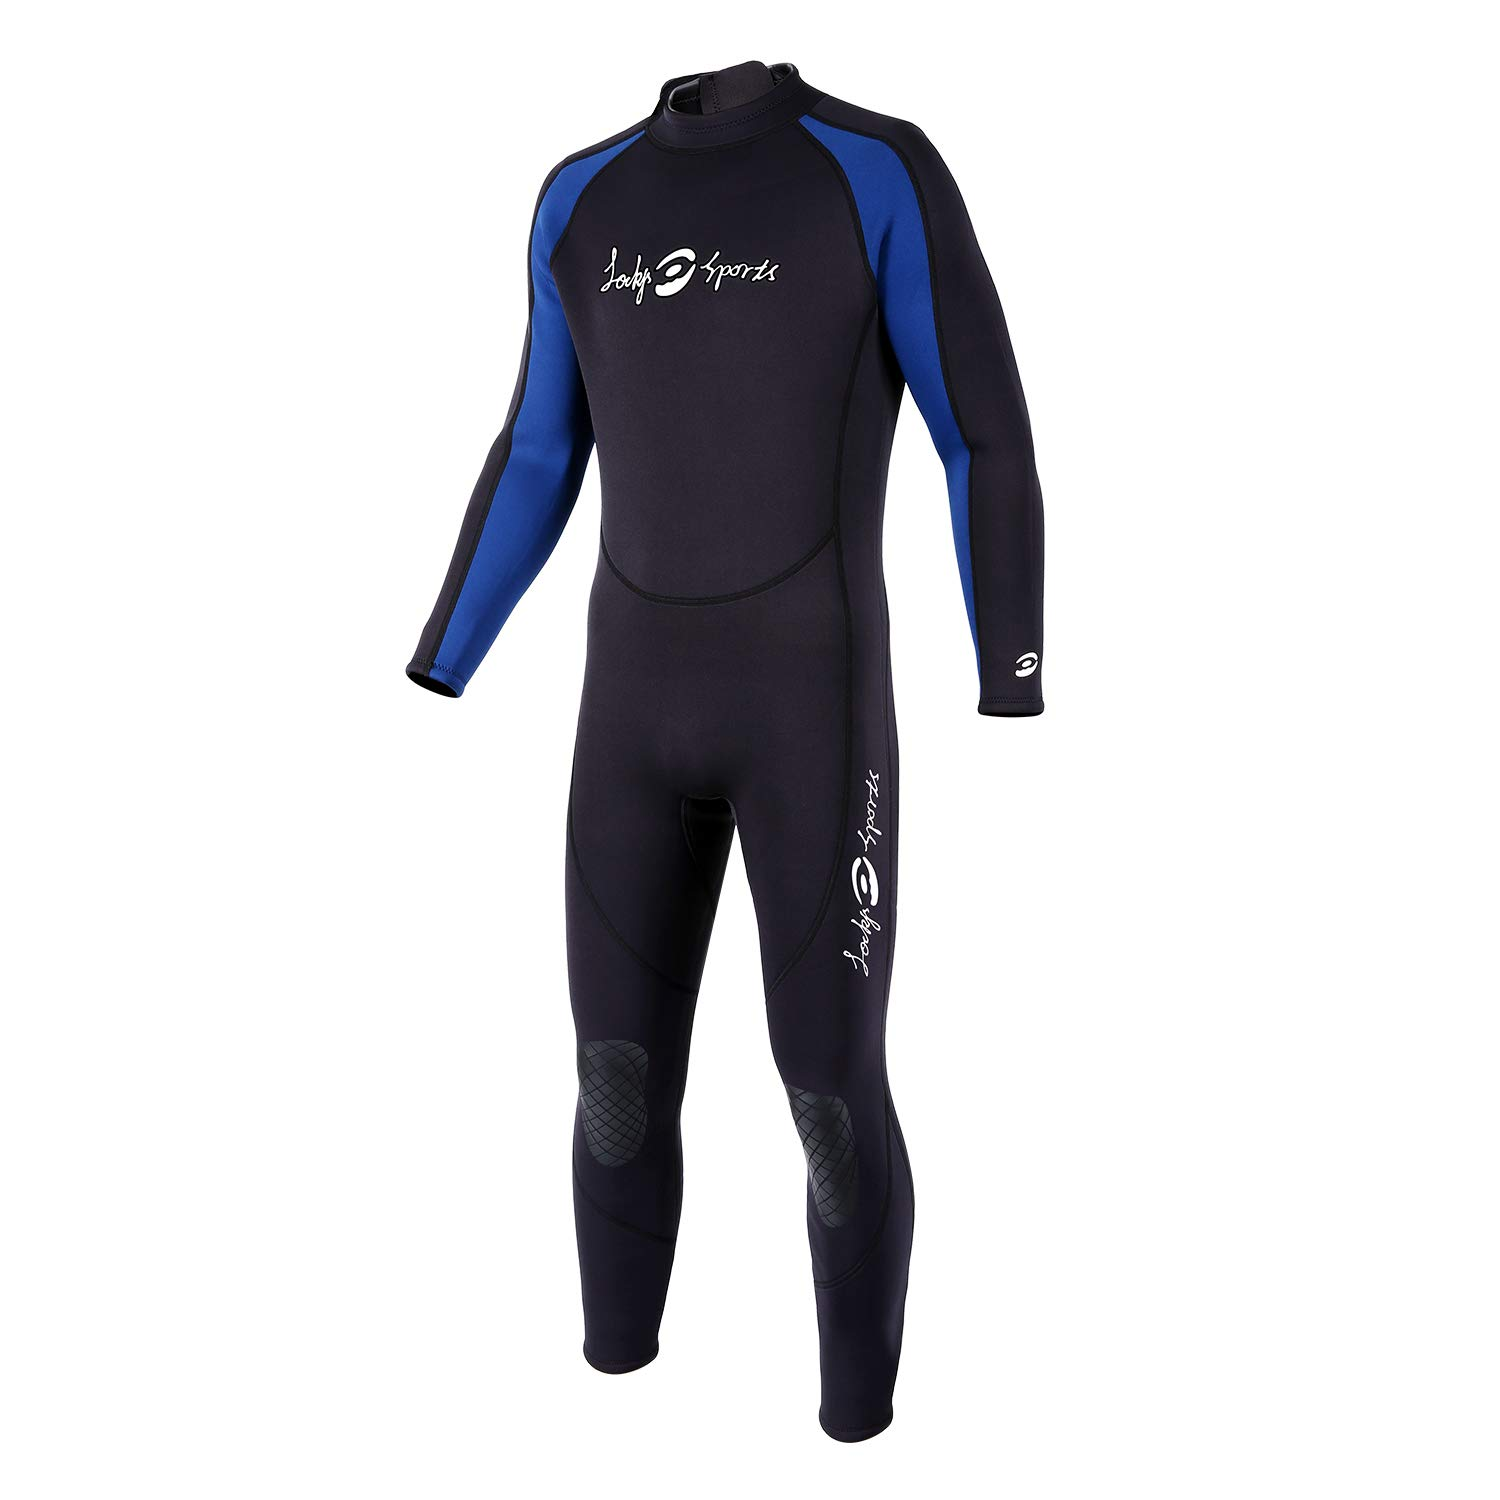 lockys sports Full Body Dive Wetsuit, 3mm Neoprene Wetsuit, Long Sleeve Swimwear with Adjustable Collar for Diving Surfing Snorkeling for Men (2X-Large) by lockys sports